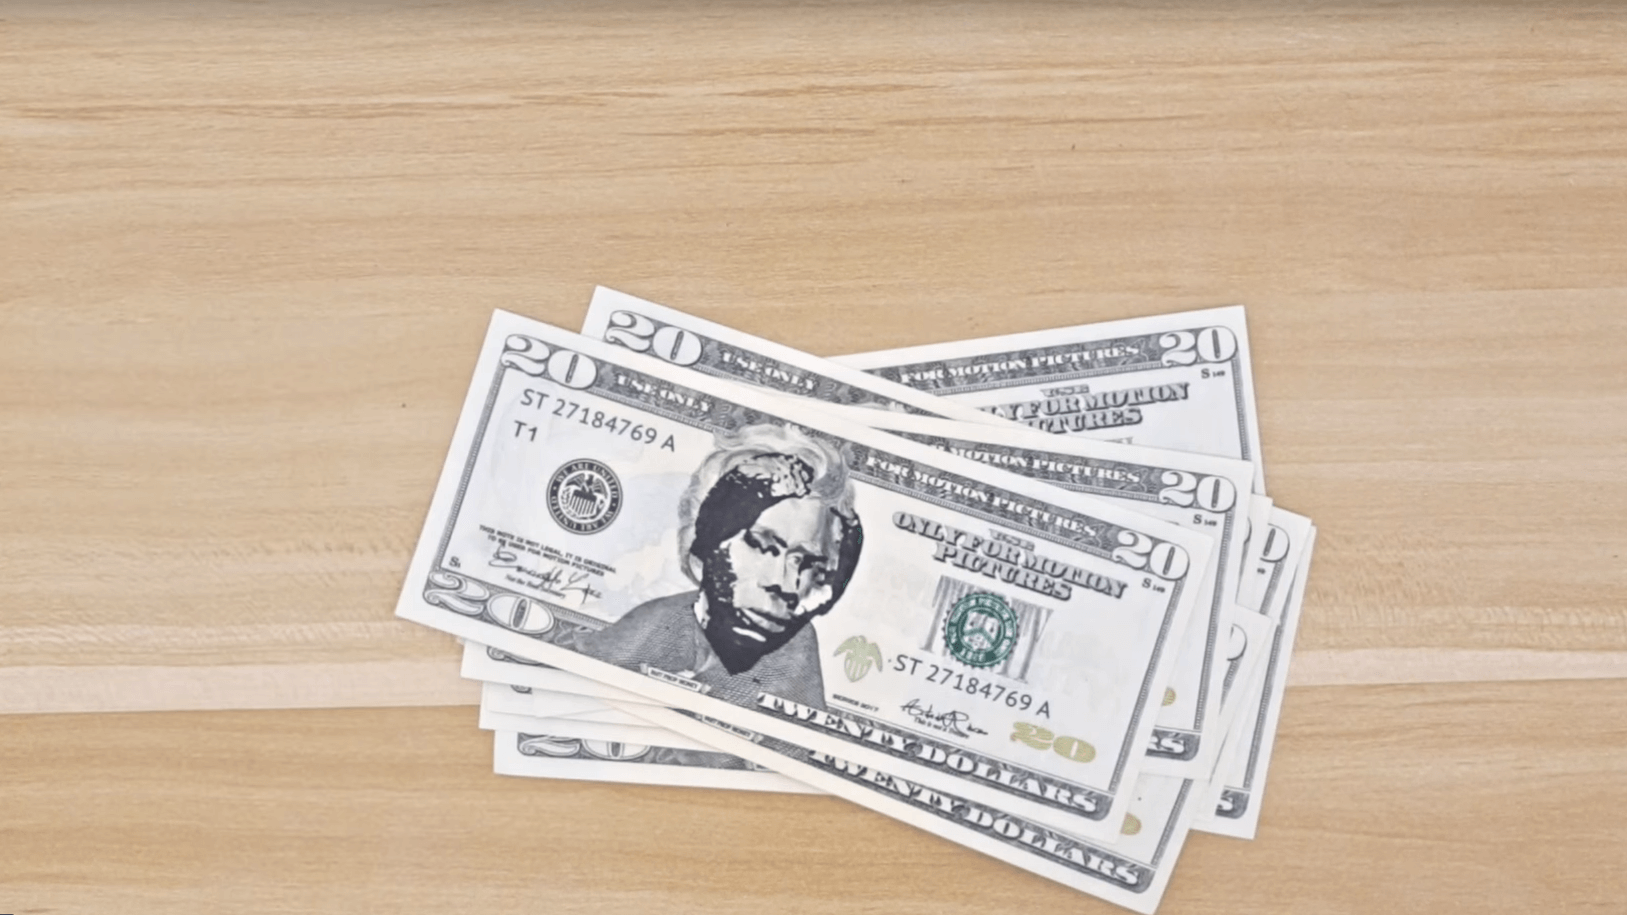 3d Printed Stamp Allows You To Put Harriet Tubman On Your 20 Bills